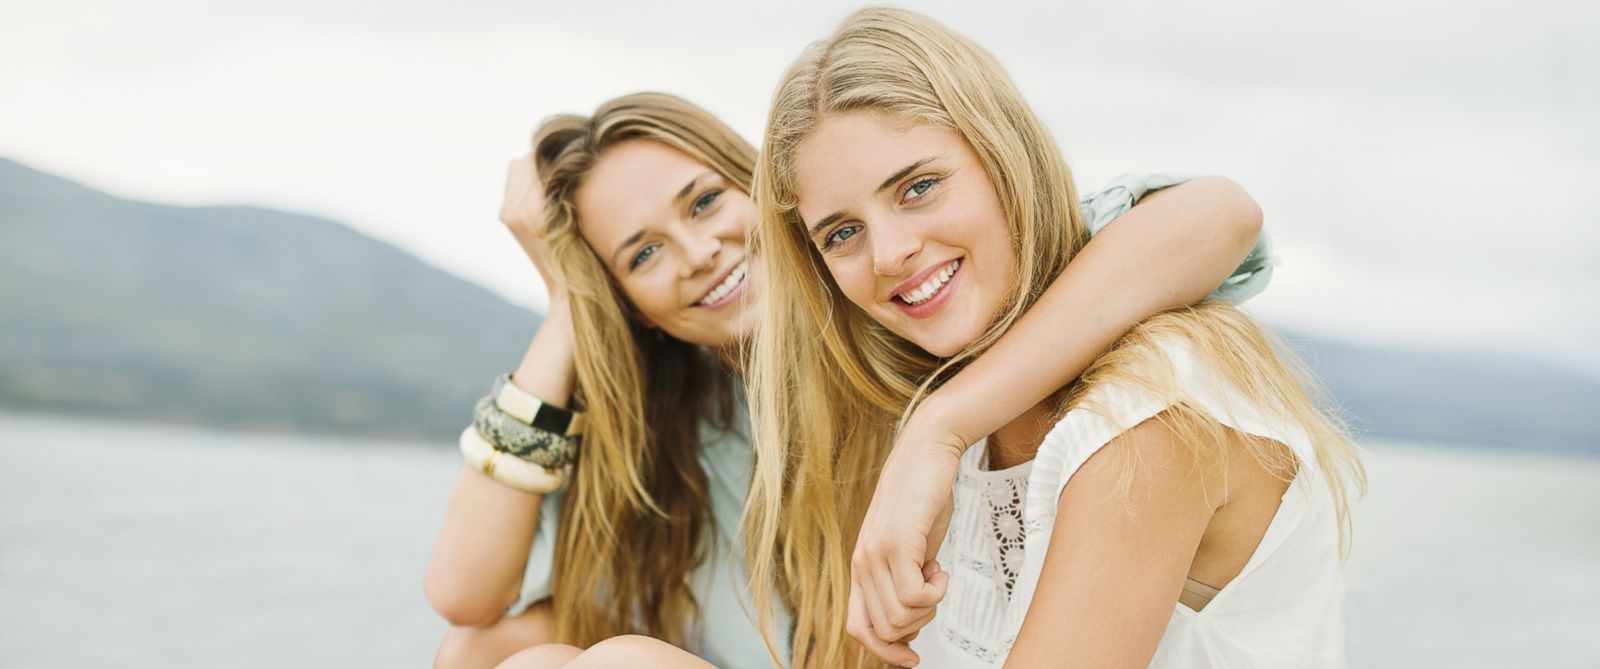 PHOTO: Two friends with blonde hair smile for a portrait.